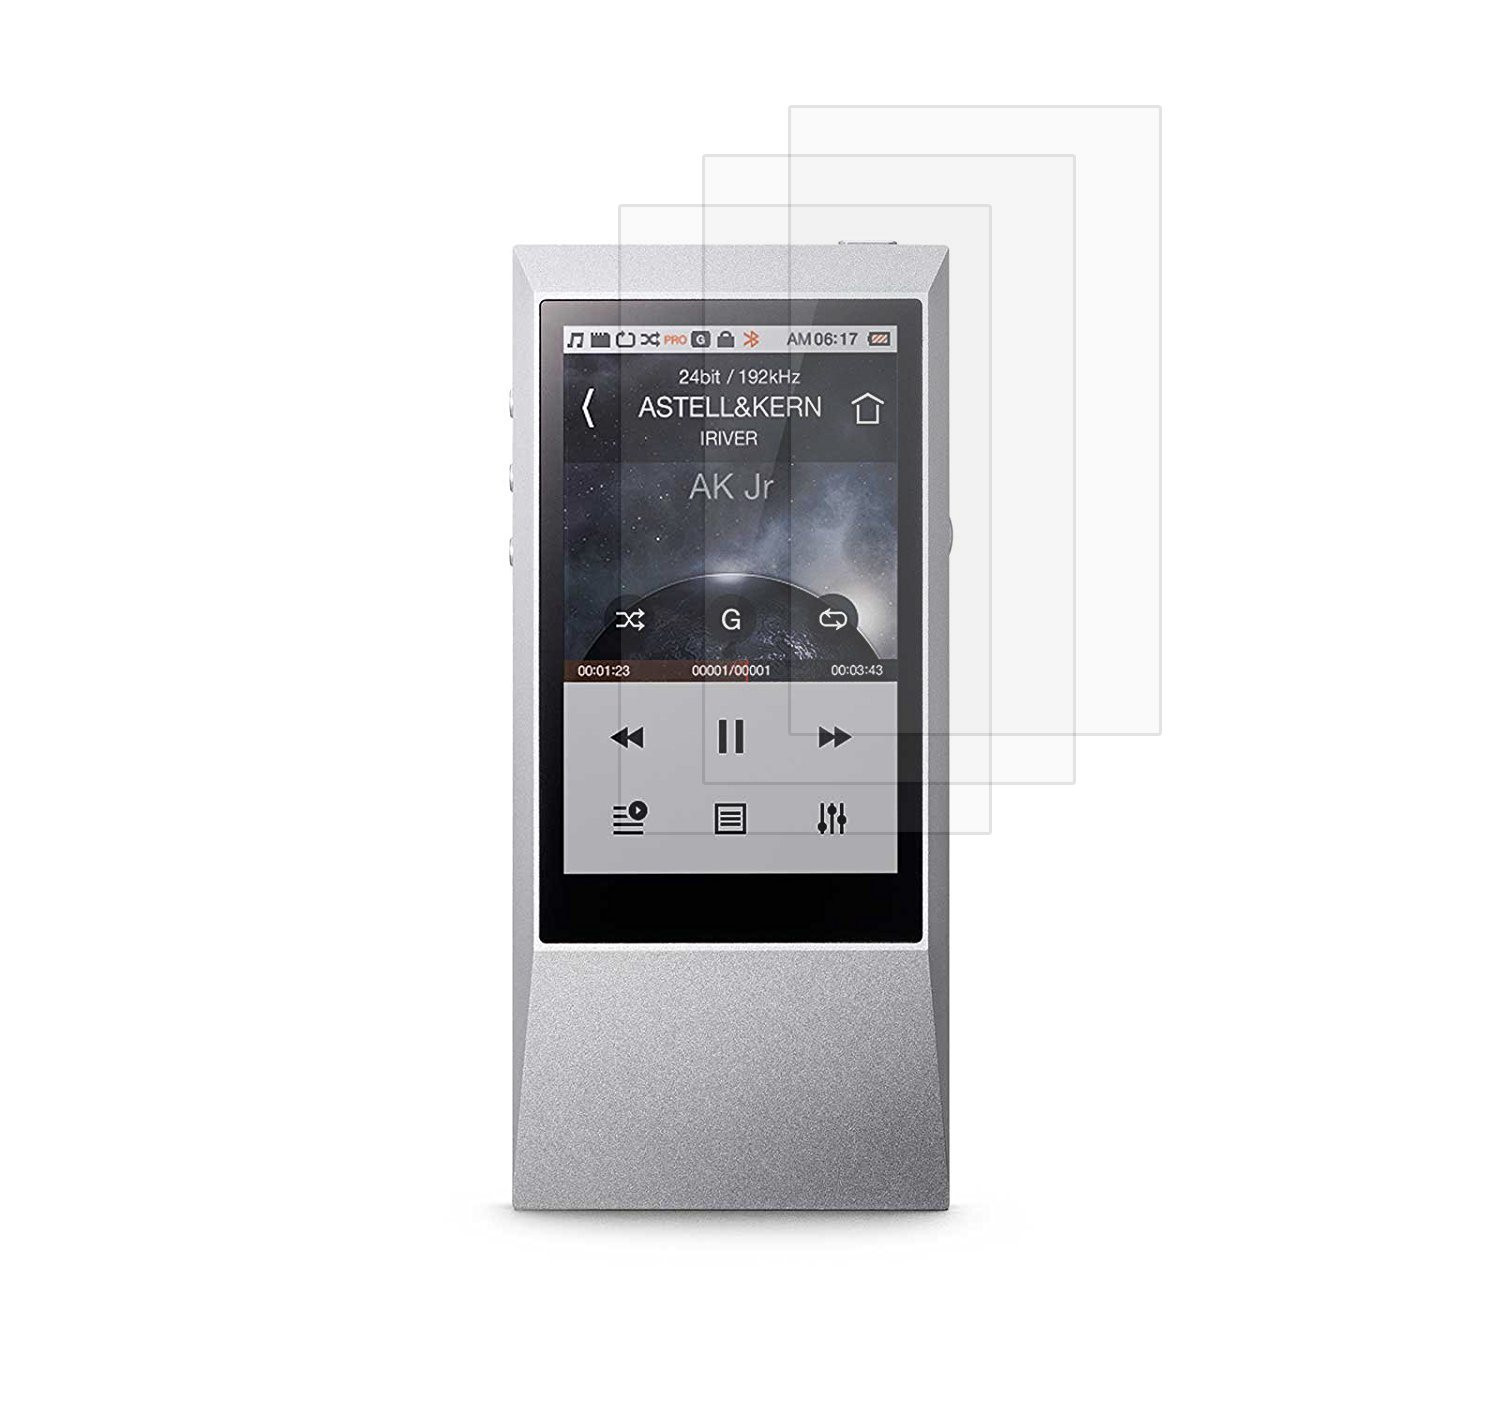 Astell & Kern AK Jr Audio Player Screen Protector, TopACE 3-Pack Ultra-Clear Premium Film for Astell & Kern AK Jr Audio Player (3-Pack)